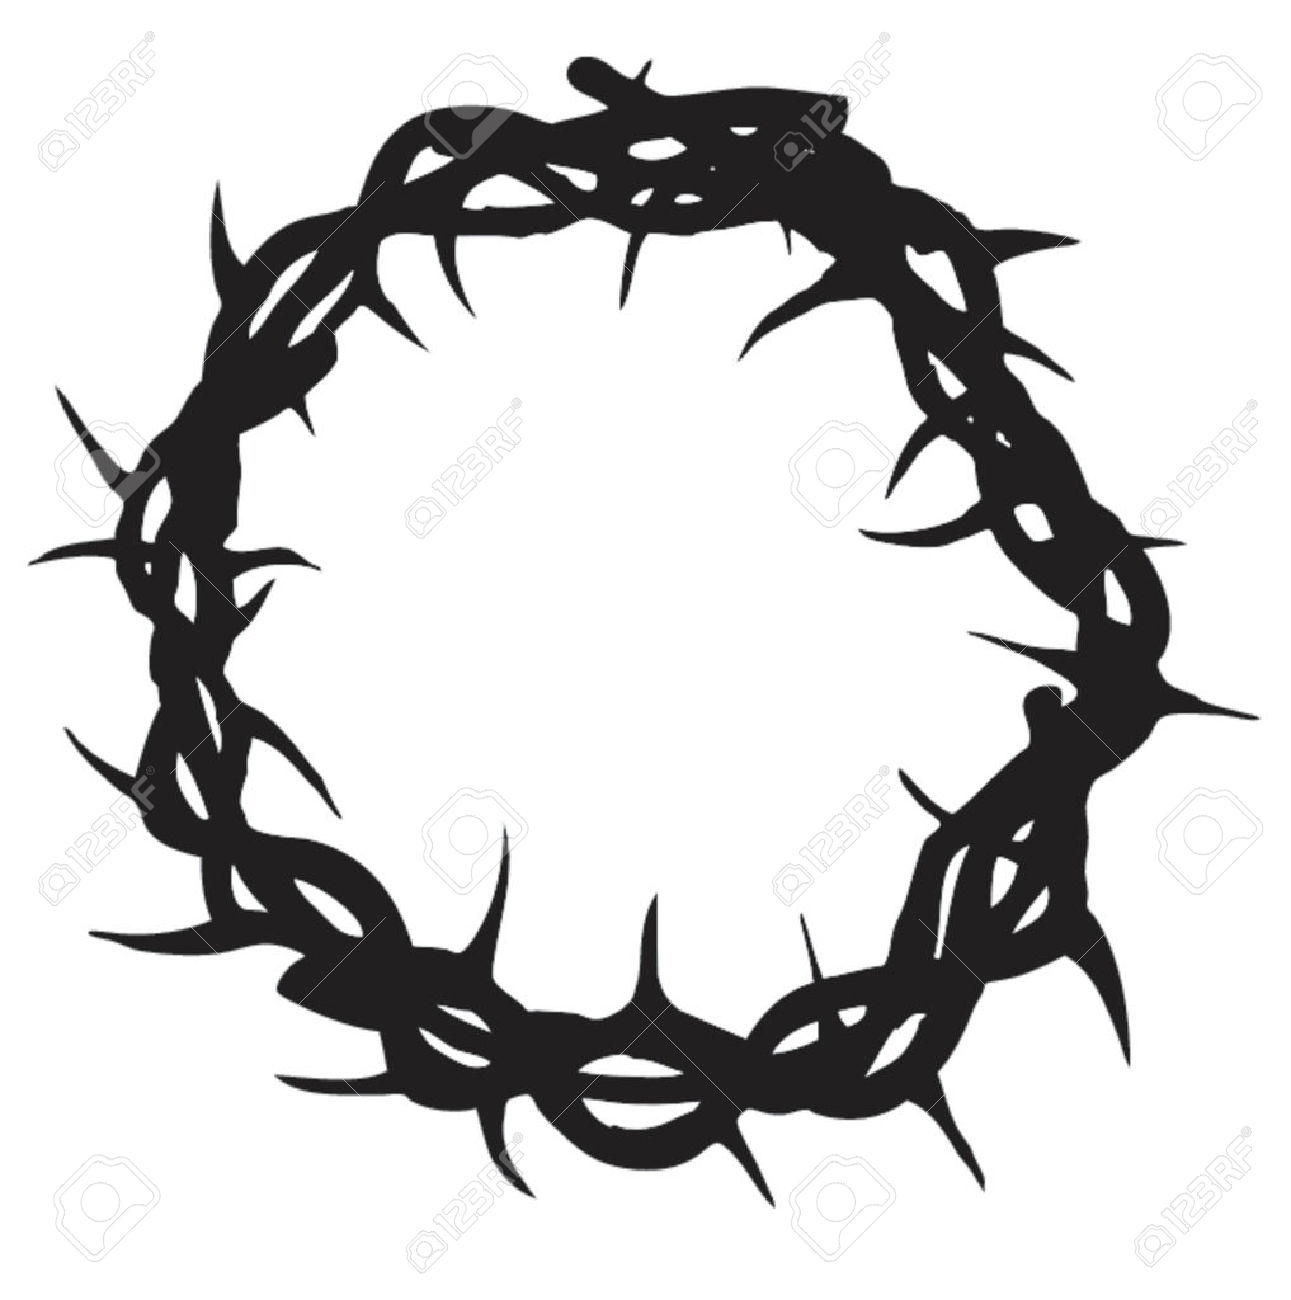 Crown Of Thorns.